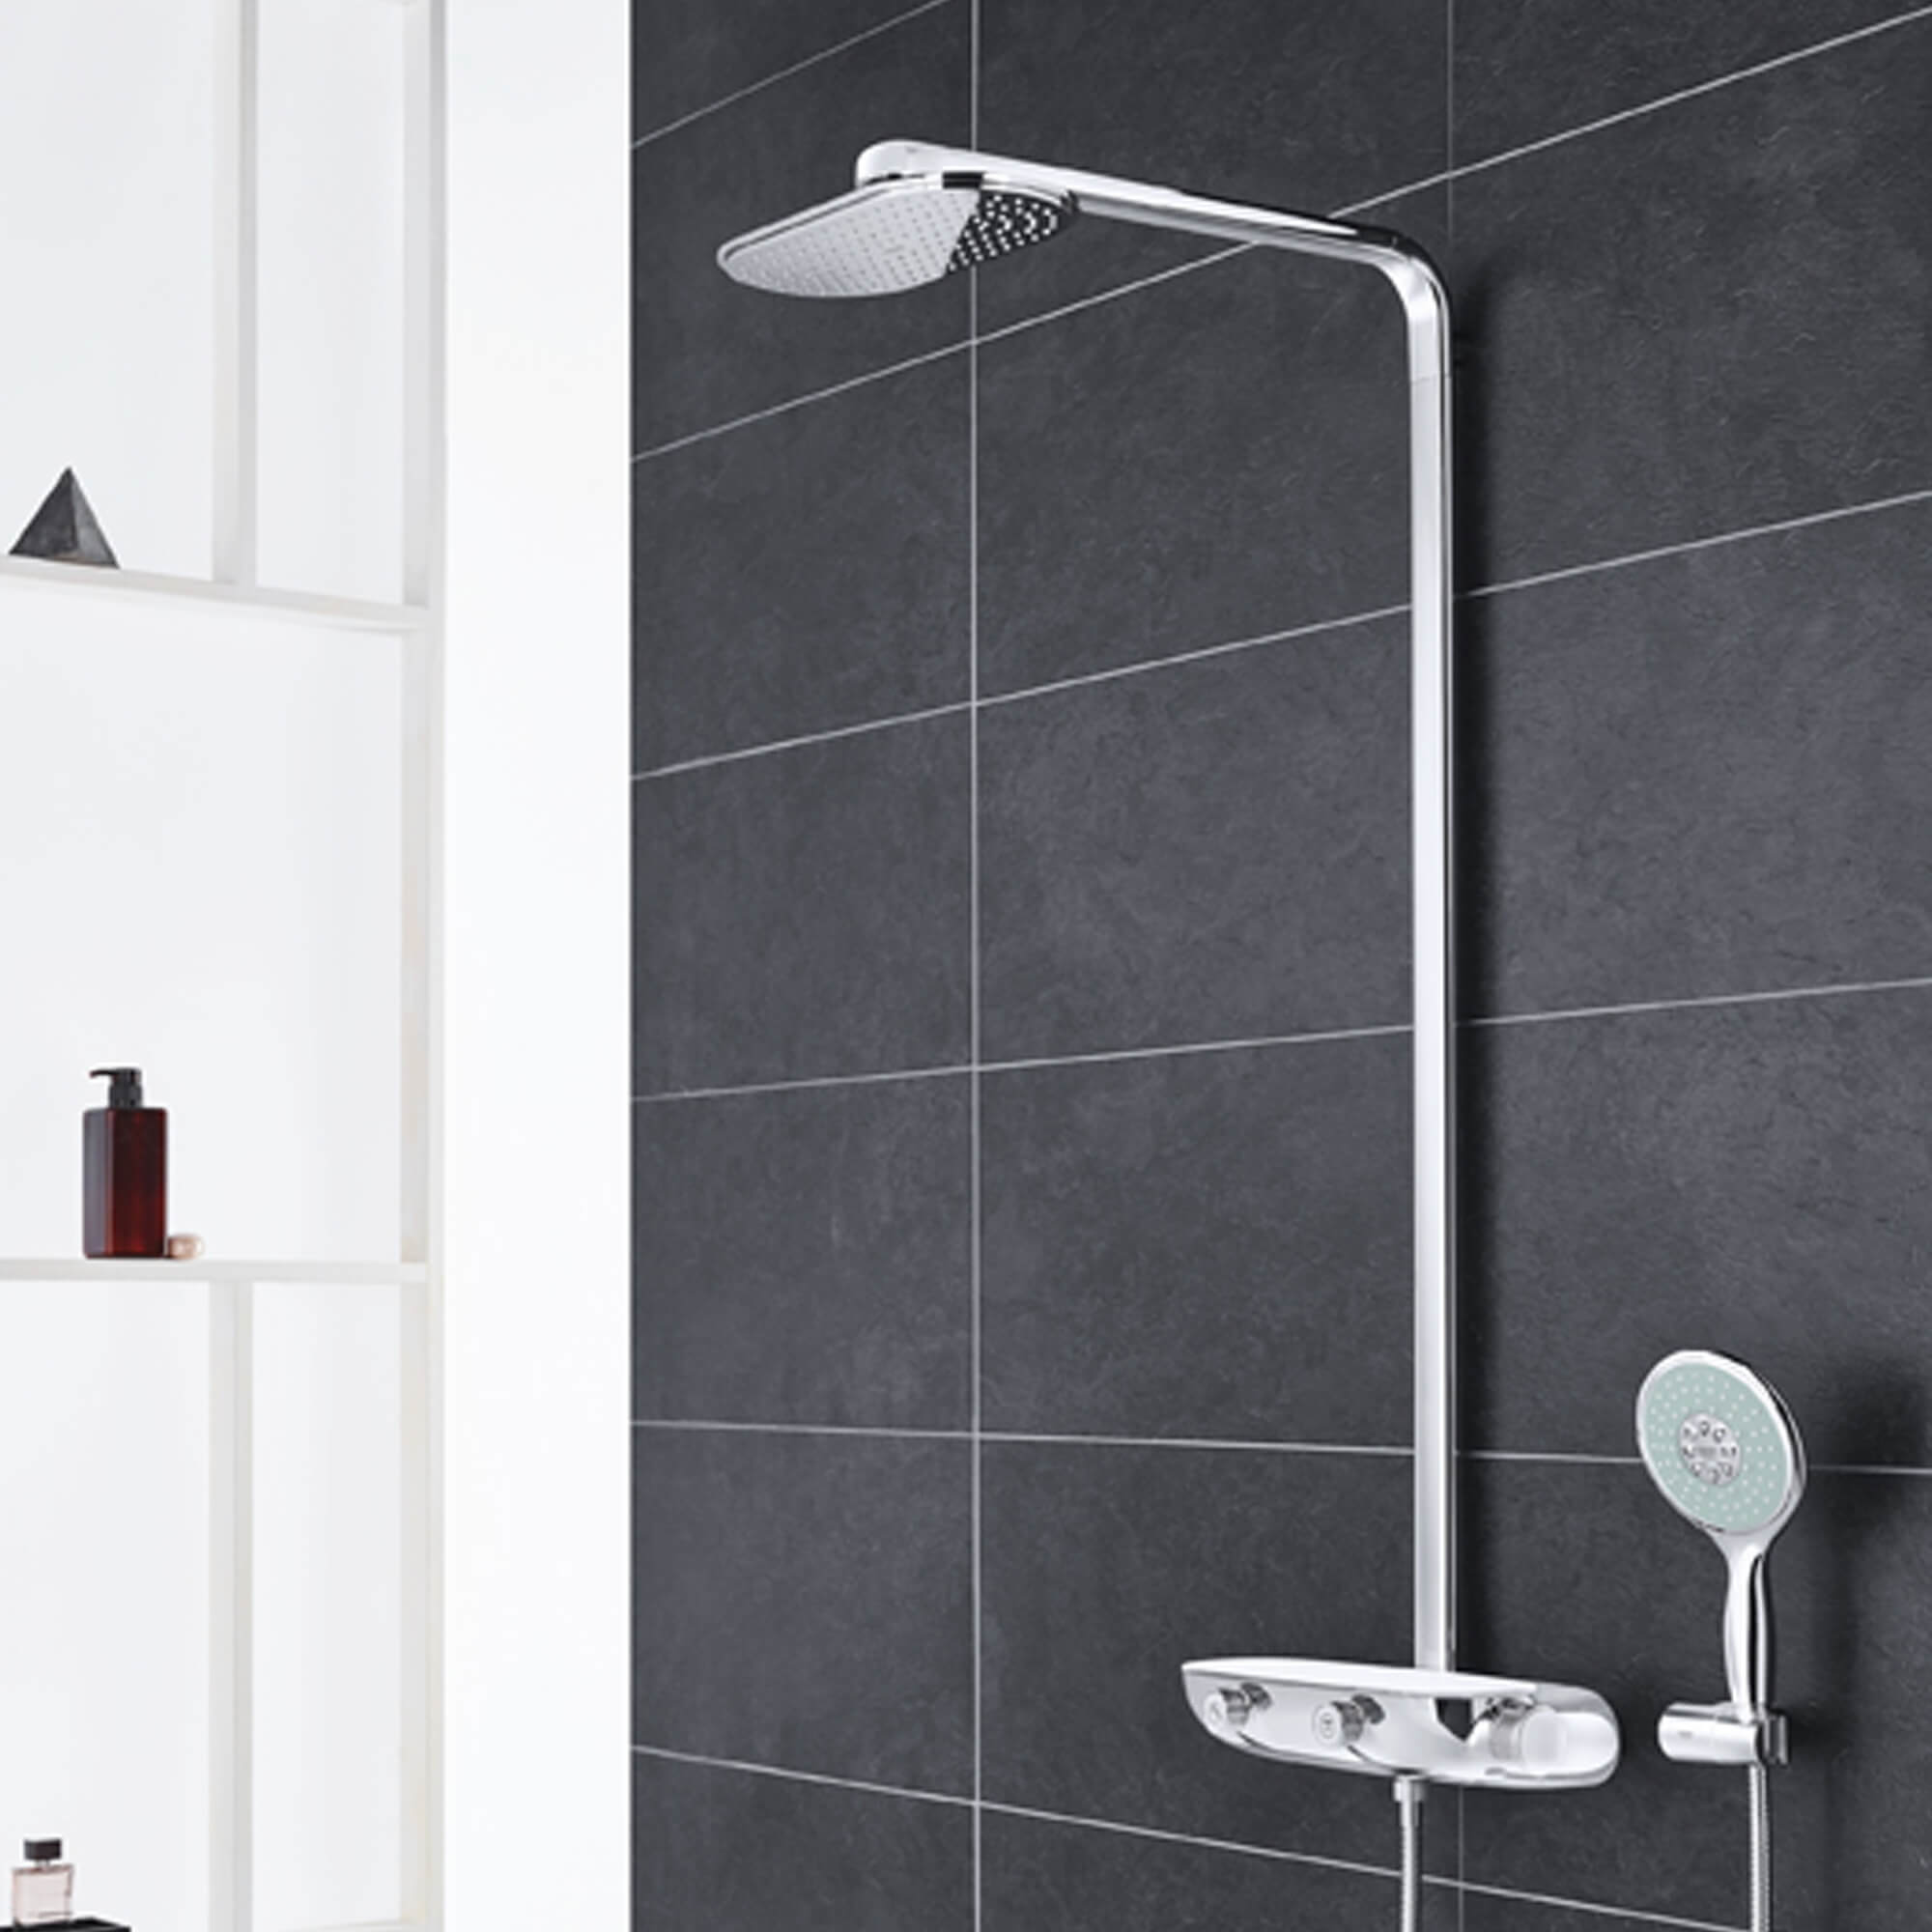 GROHE Smart Control Shower with water off